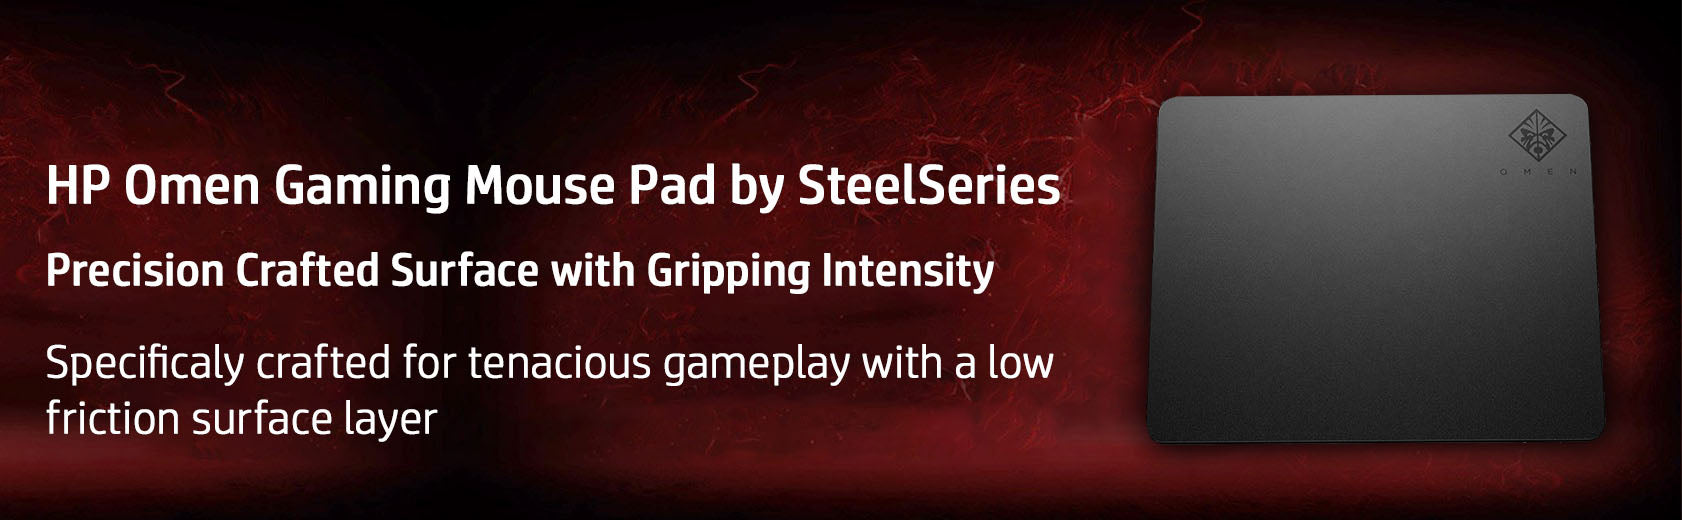 HP_OMEN_GAMING_MOUSE_PAD_STEEL_SERIES